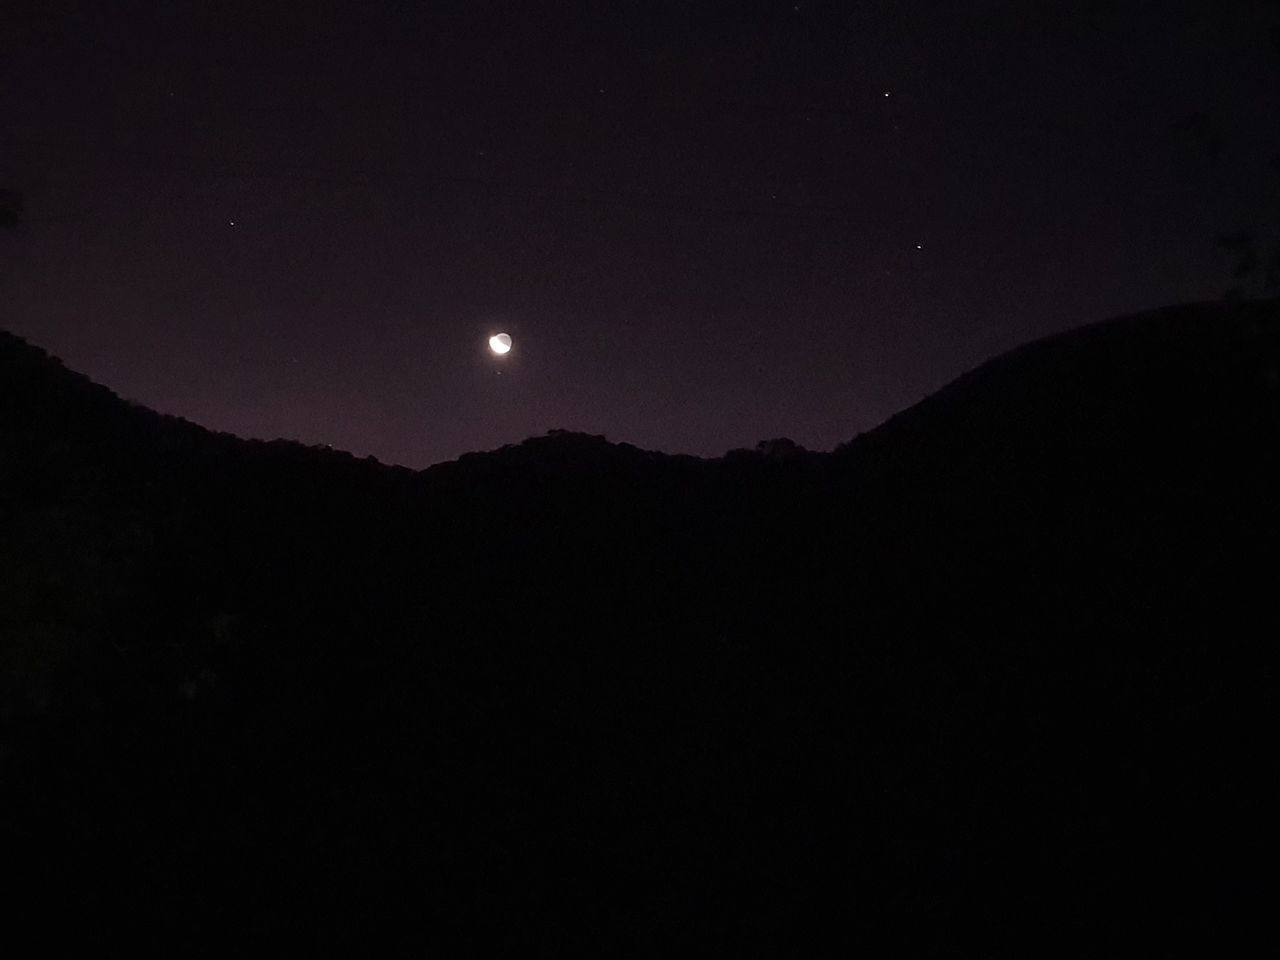 SILHOUETTE MOUNTAIN AGAINST CLEAR SKY AT NIGHT